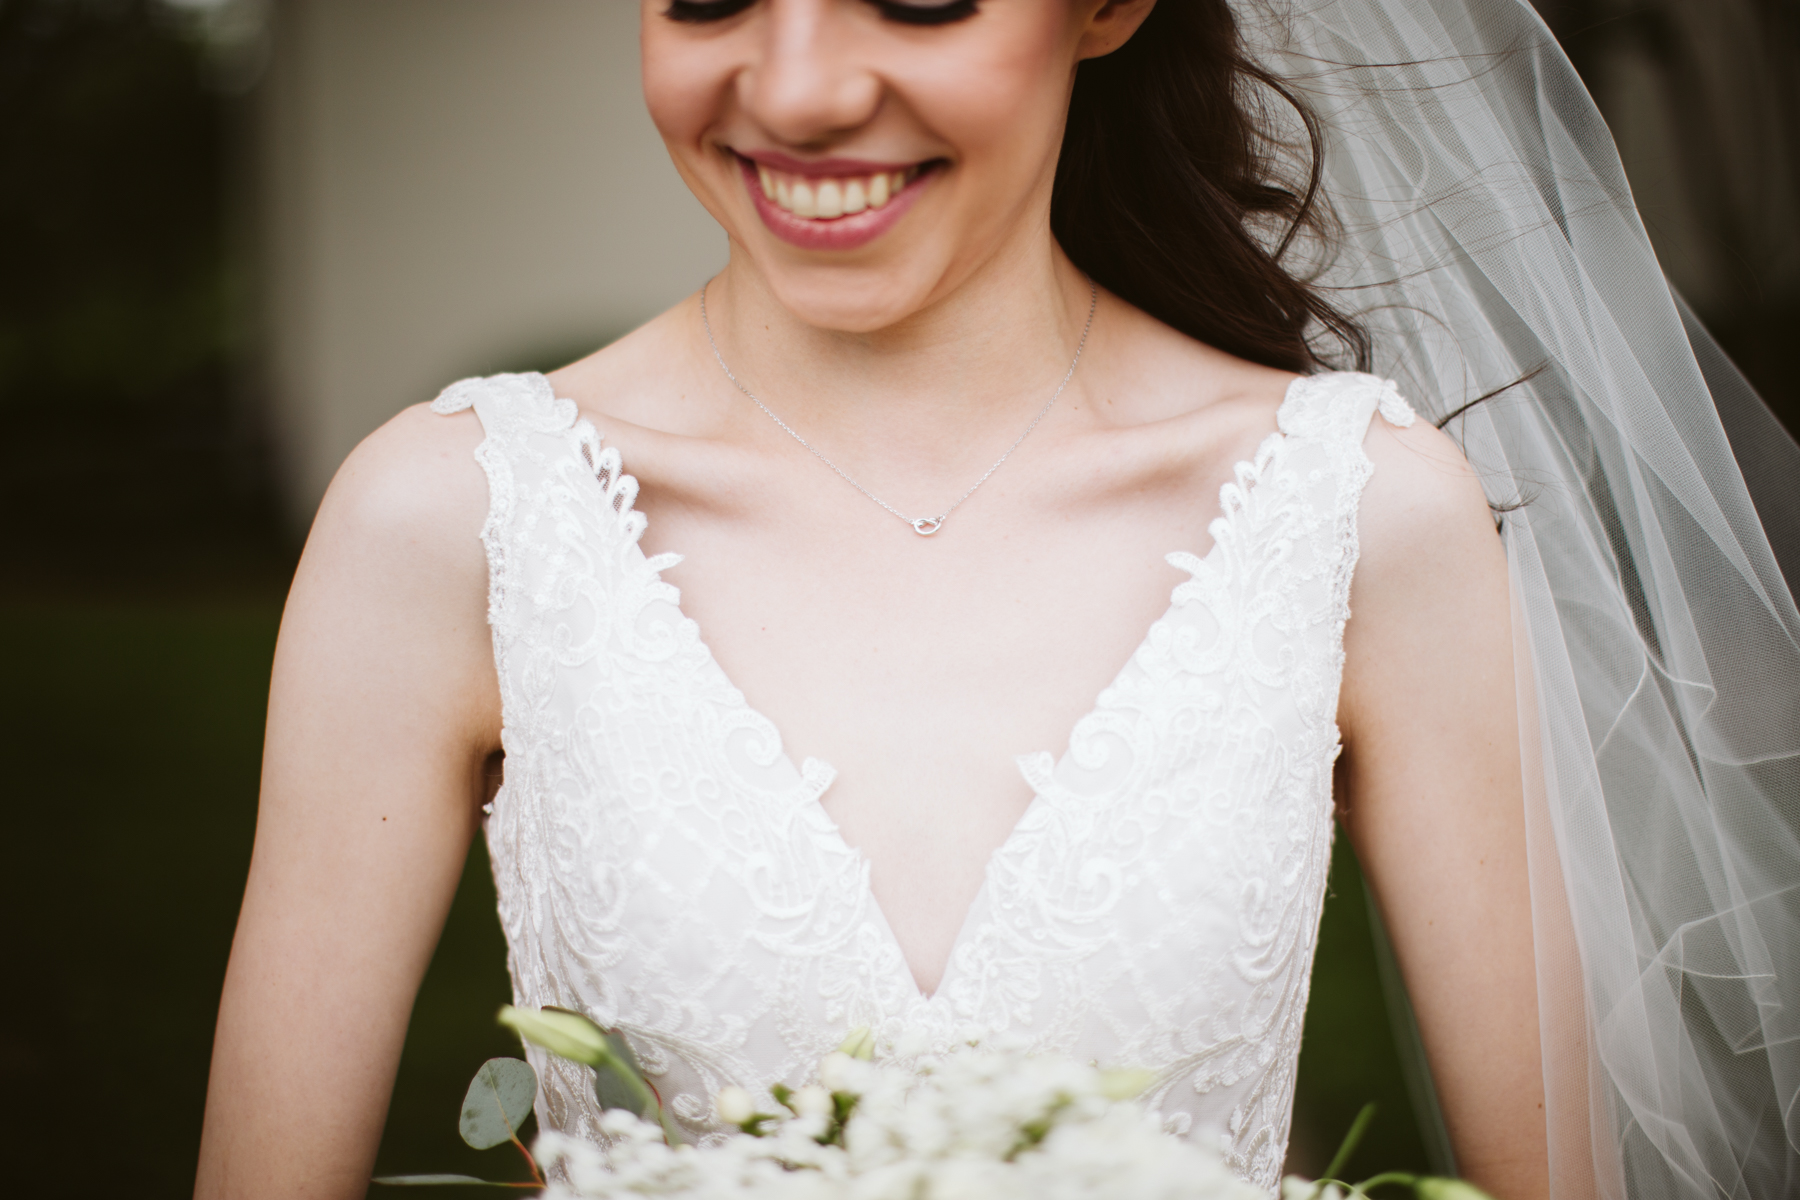 bridal portraits before a rainy summer wedding at brentwood hills church in Nashville, tennessee